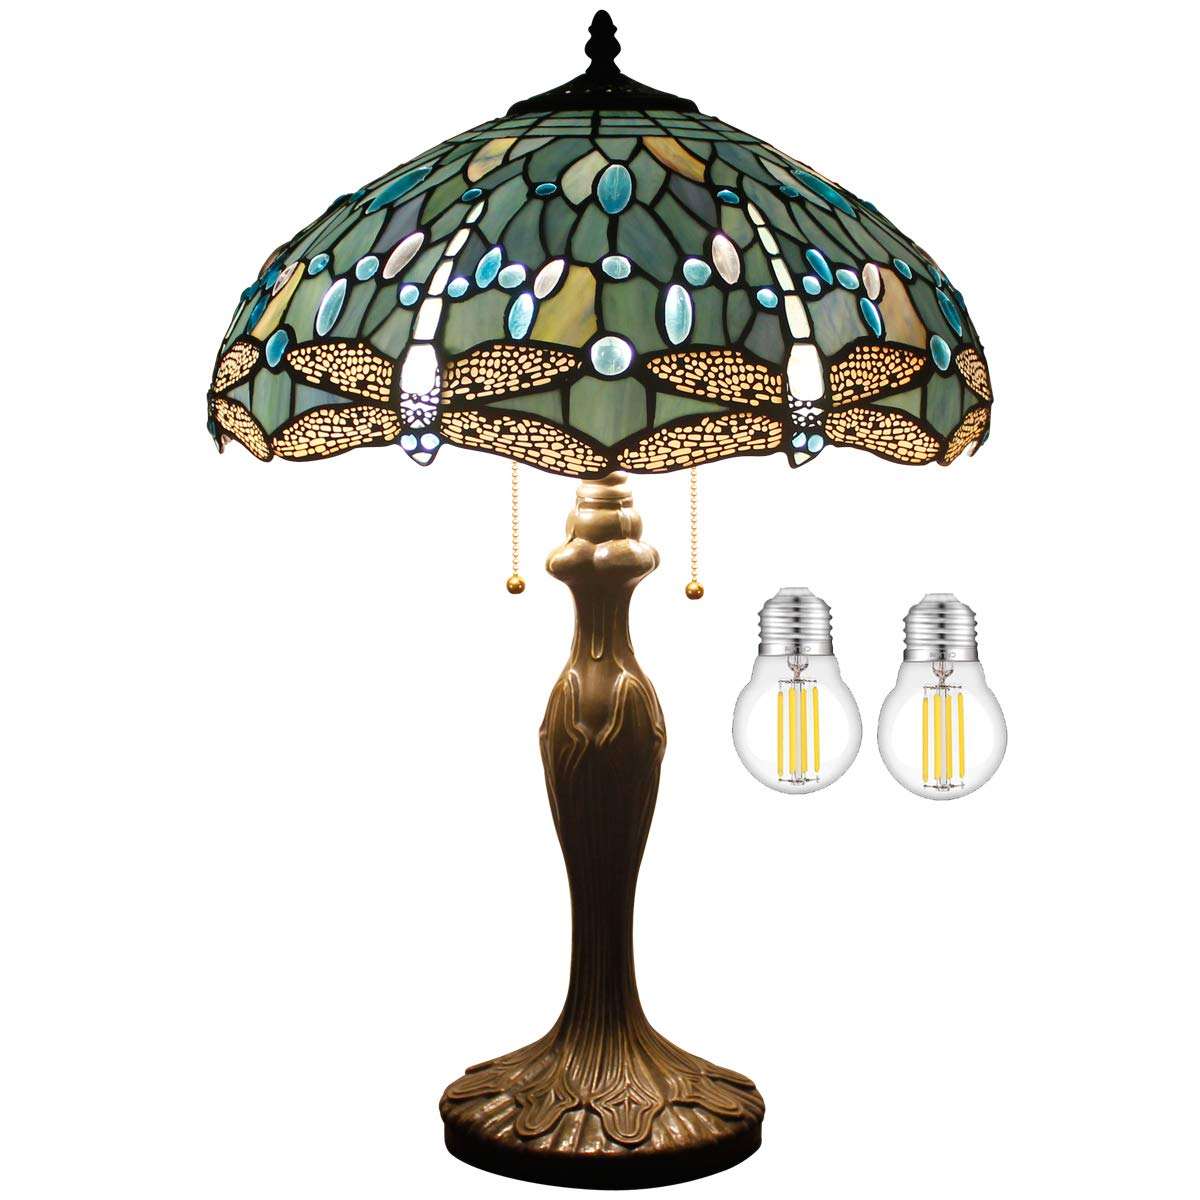 Tiffany Lamp W16H24 Inch Tall(LED Bulb Included) Sea Blue Stained Glass Table Lamp Crystal Bead Dragonfly Style Shade S147 WERFACTORY Lover Friend Living Room Bedroom Coffee Bar Desk Beside Lamp Gifts